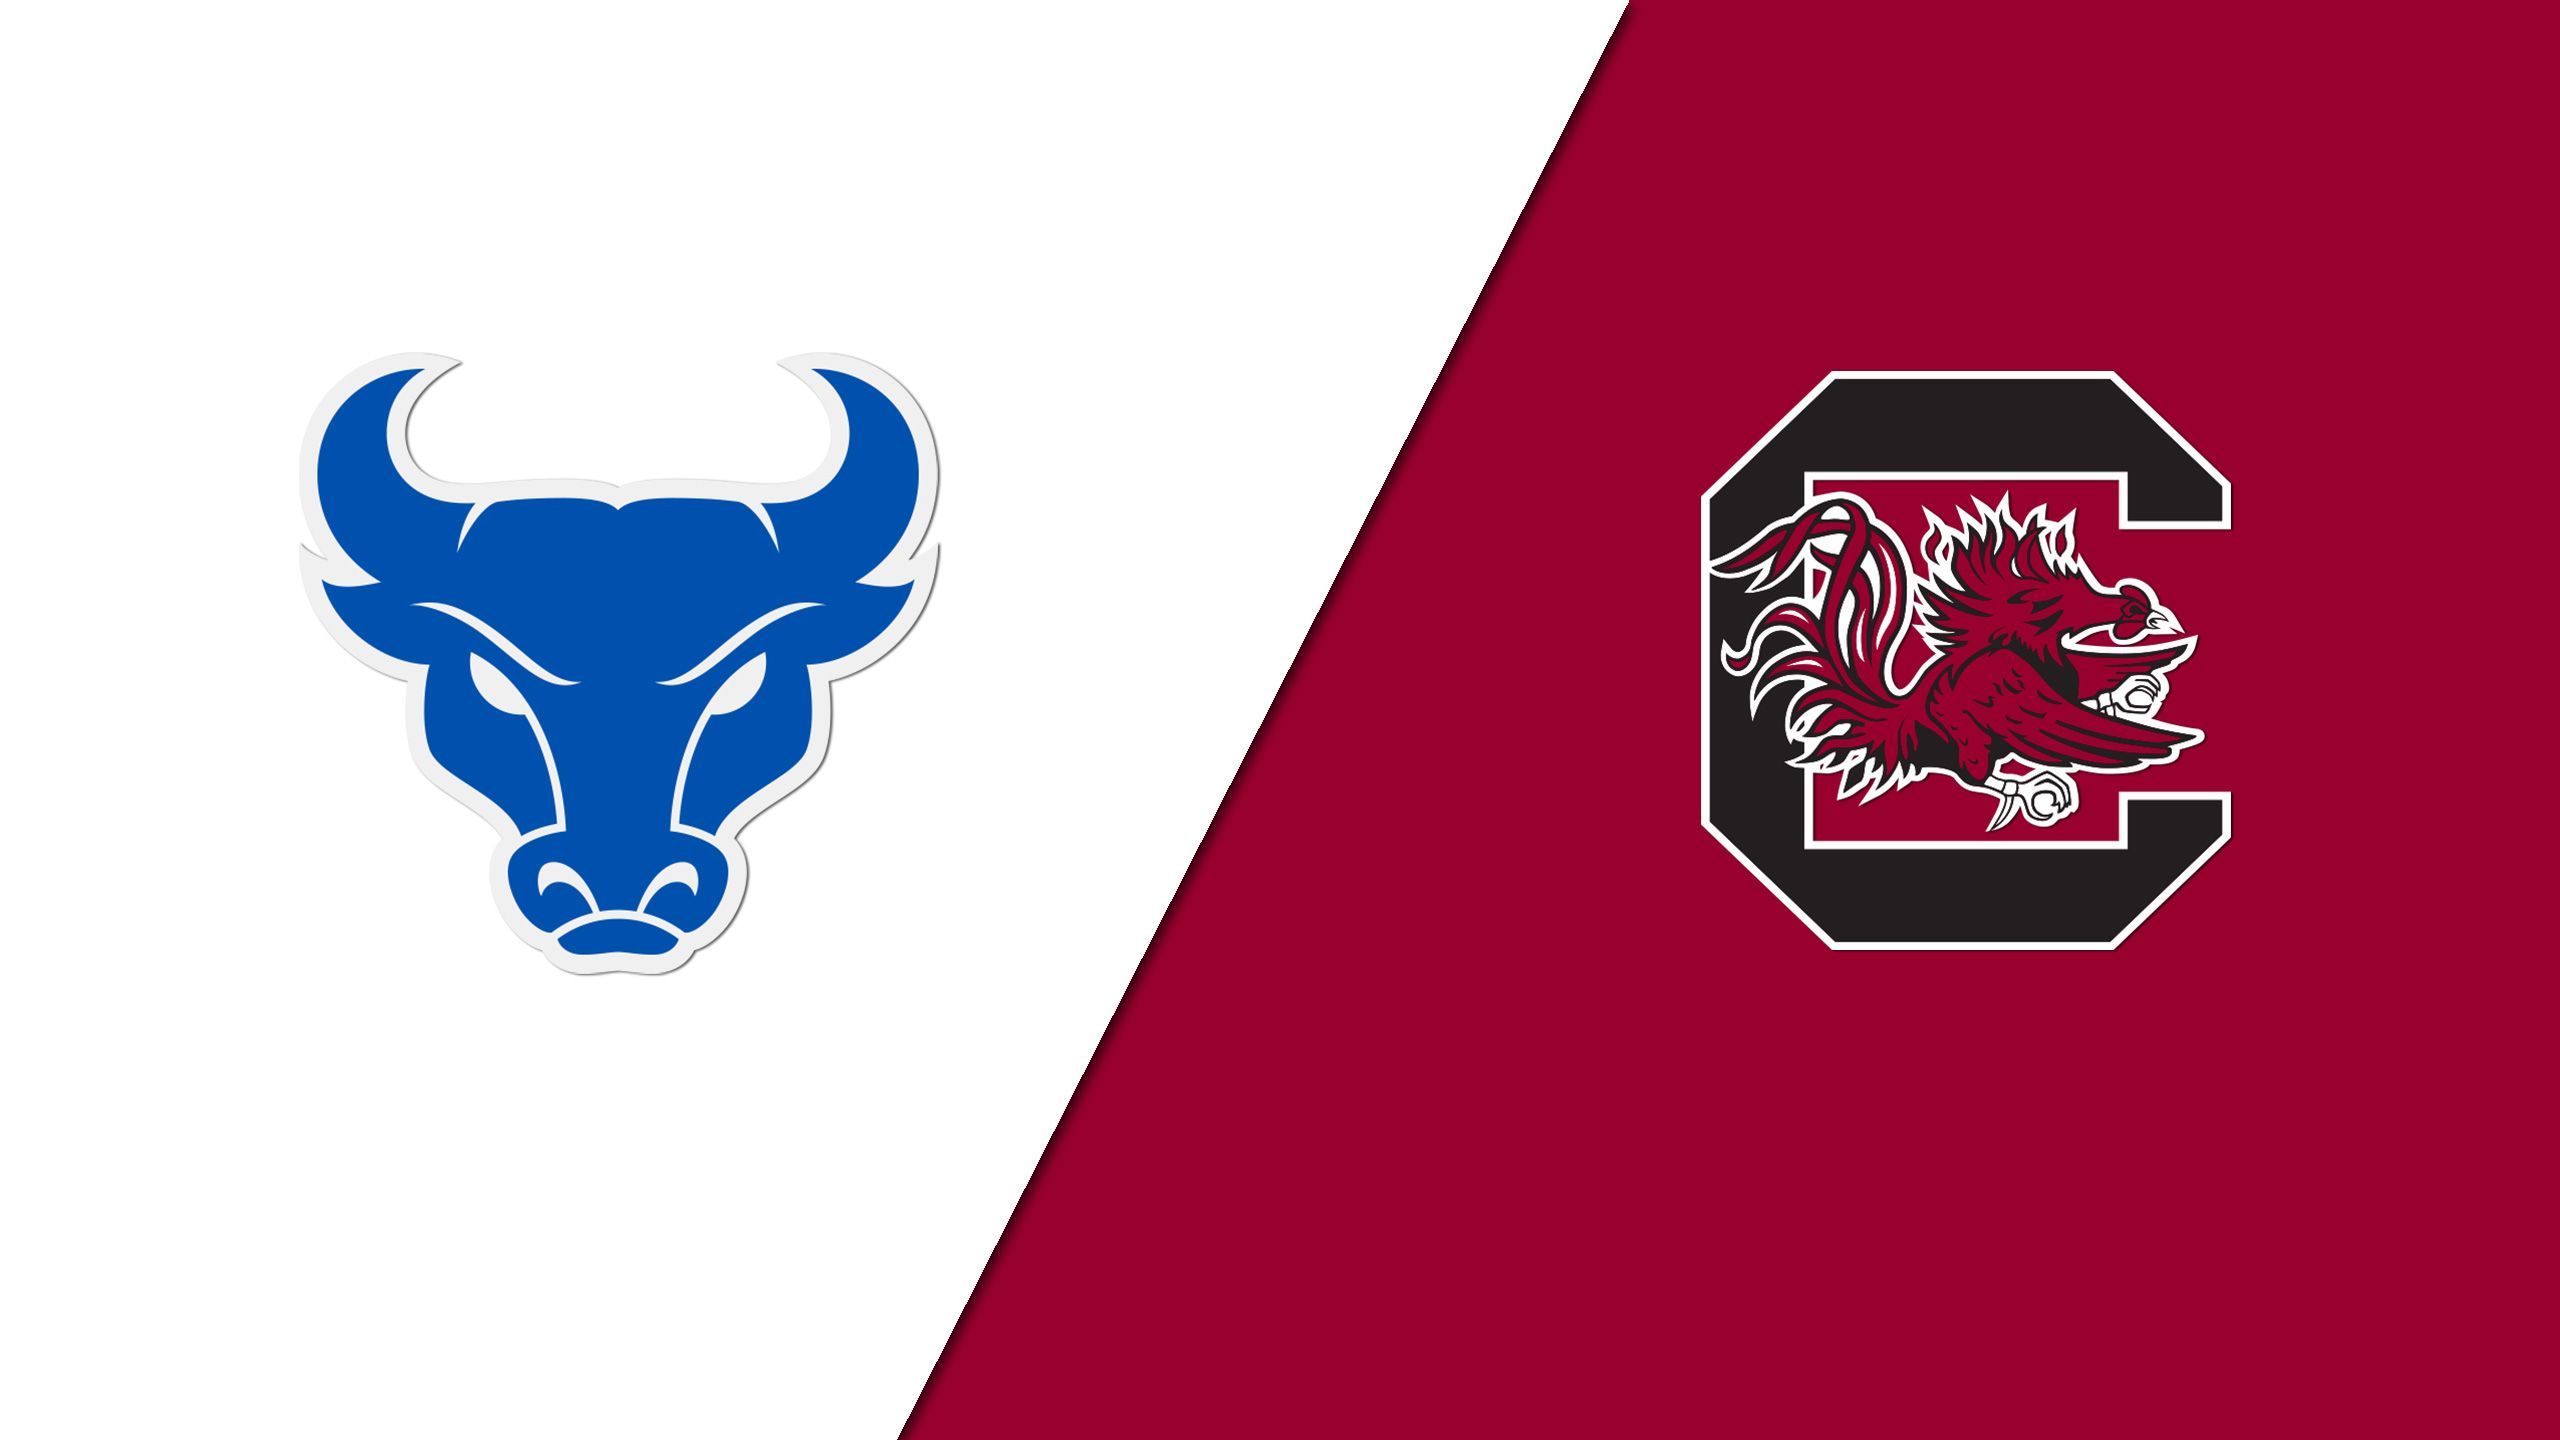 #11 Buffalo vs. #2 South Carolina (Regional Semifinal) (NCAA Women's Basketball Championship)